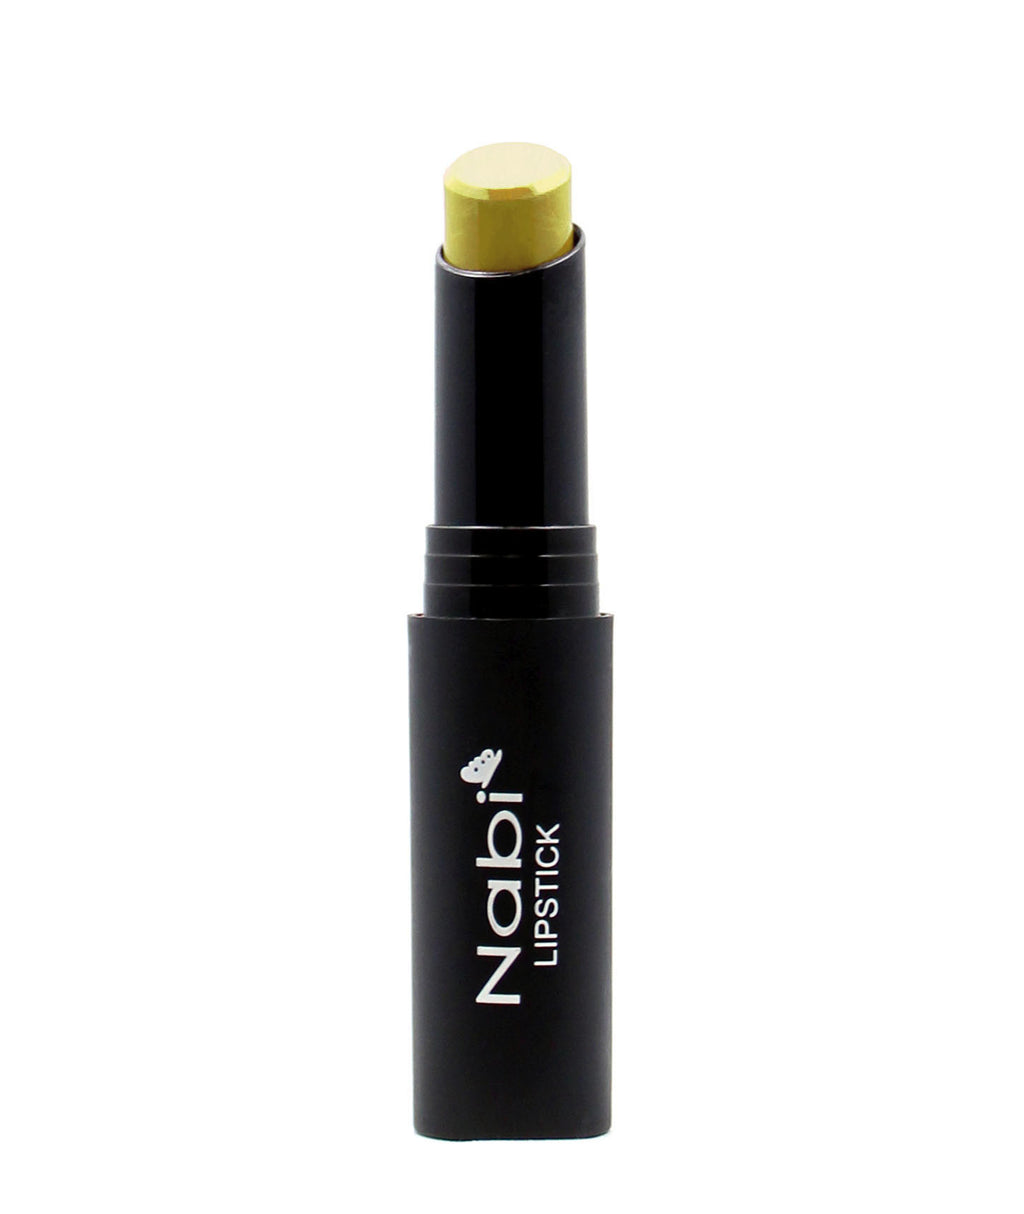 NLS81 - Regular Lipstick Yellow